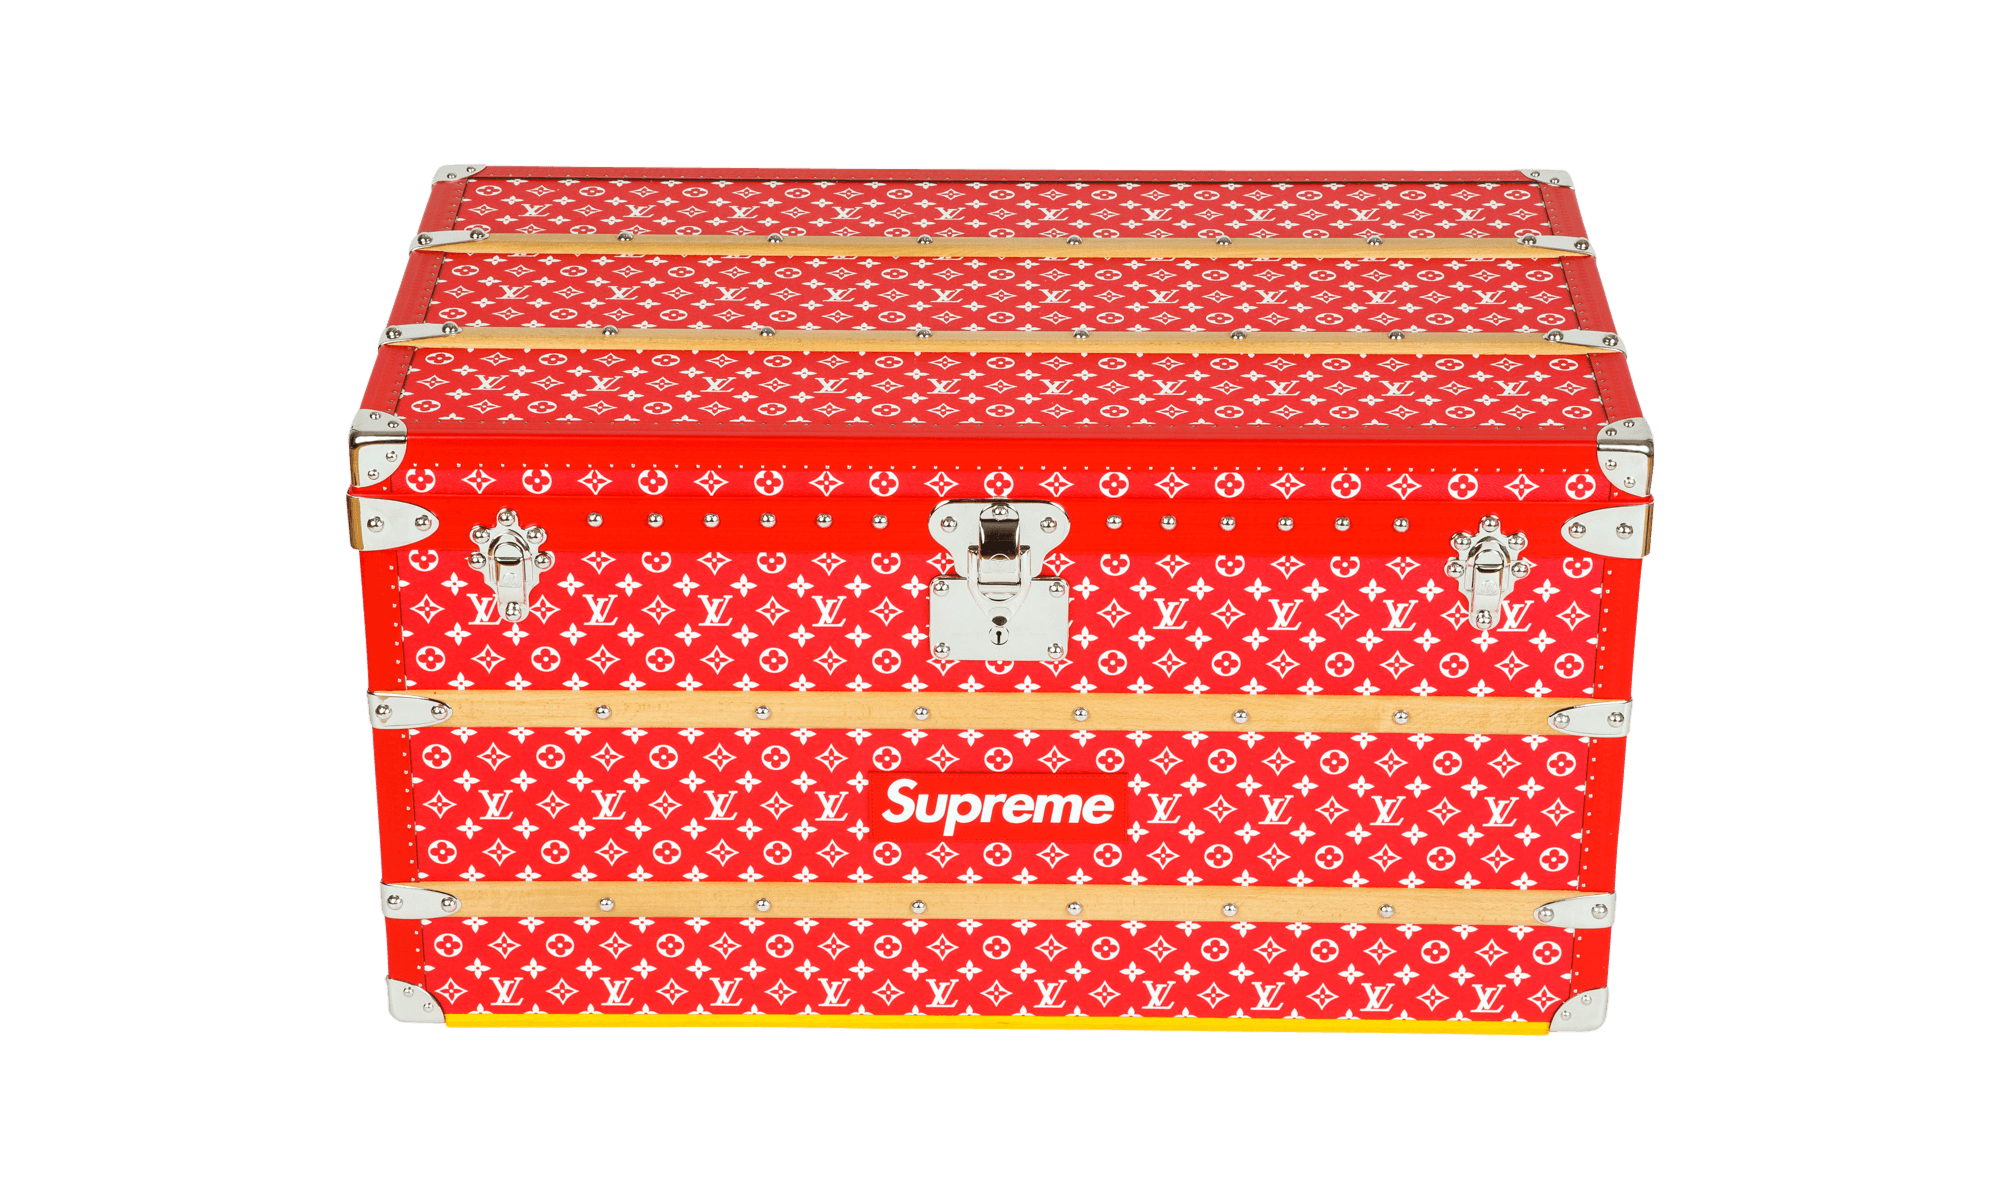 c9f5e119f0a Louis Vuitton x Supreme Malle Courrier 90 Trunk Louis Vuitton Trunk